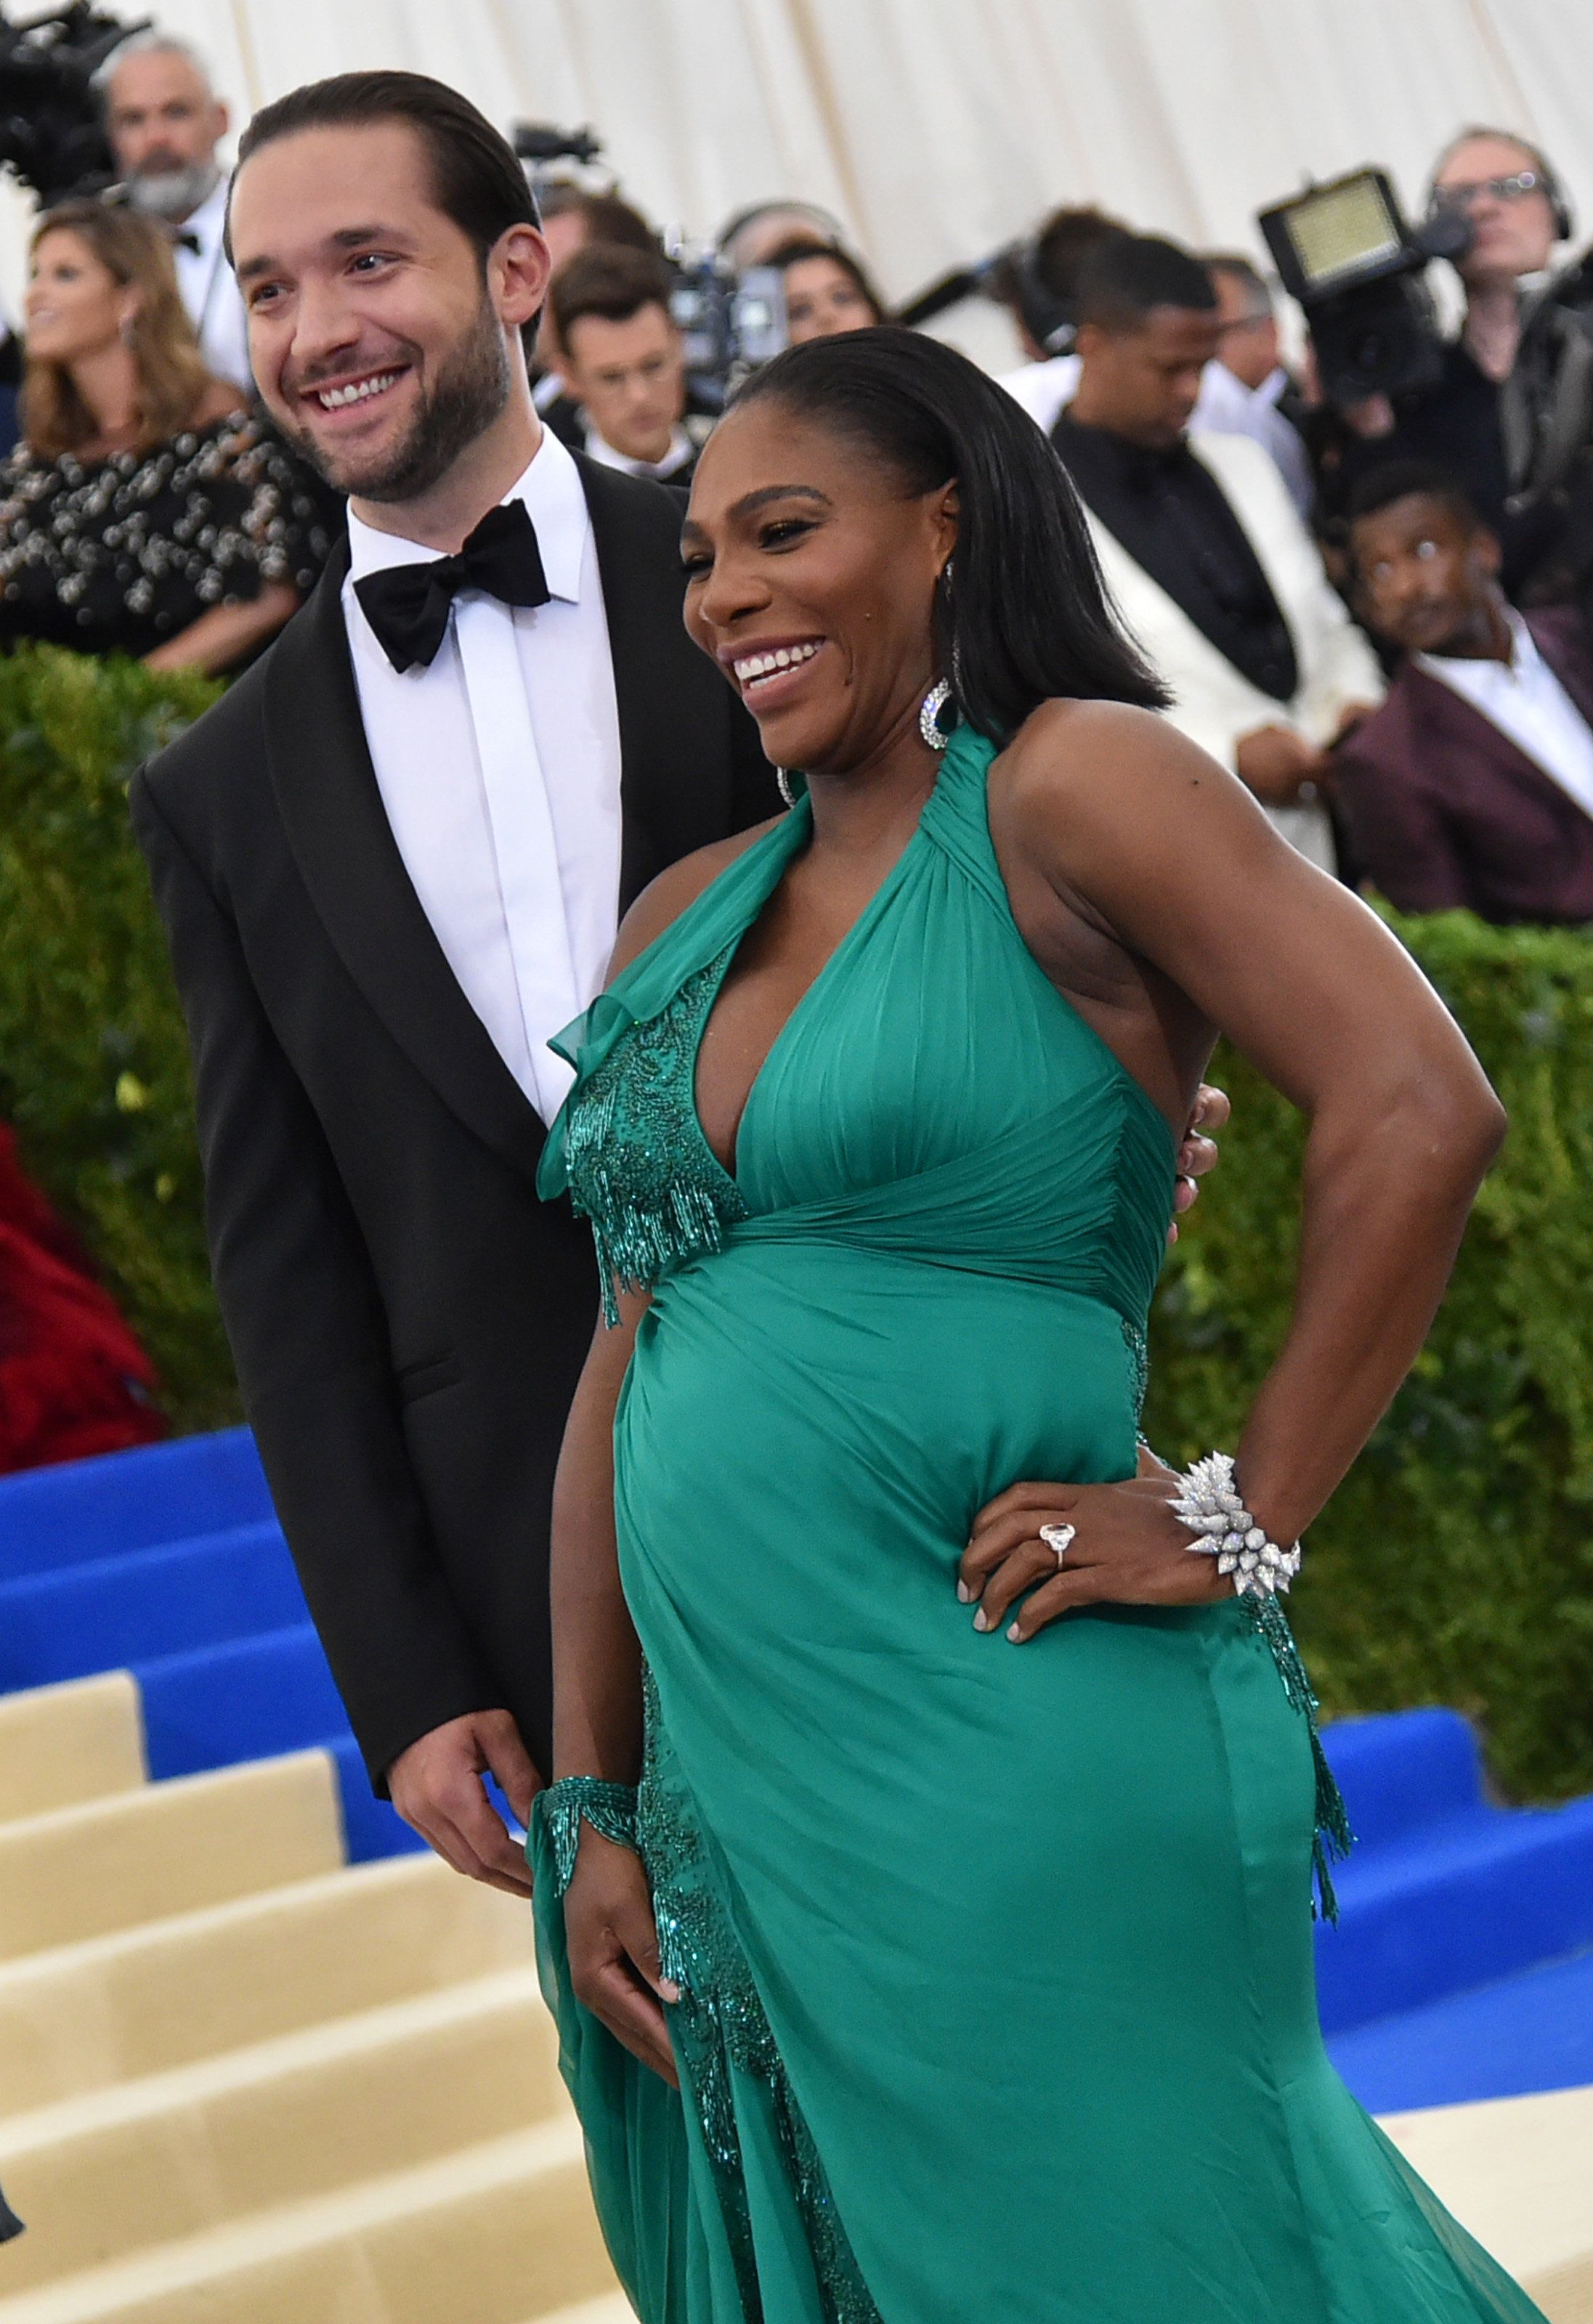 NEW YORK, NY - MAY 01:  Alexis Ohanian and Serena Williams attend the 'Rei Kawakubo/Comme des Garcons: Art Of The In-Between' Costume Institute Gala at Metropolitan Museum of Art on May 1, 2017 in New York City.  (Photo by Mike Coppola/Getty Images for People.com)